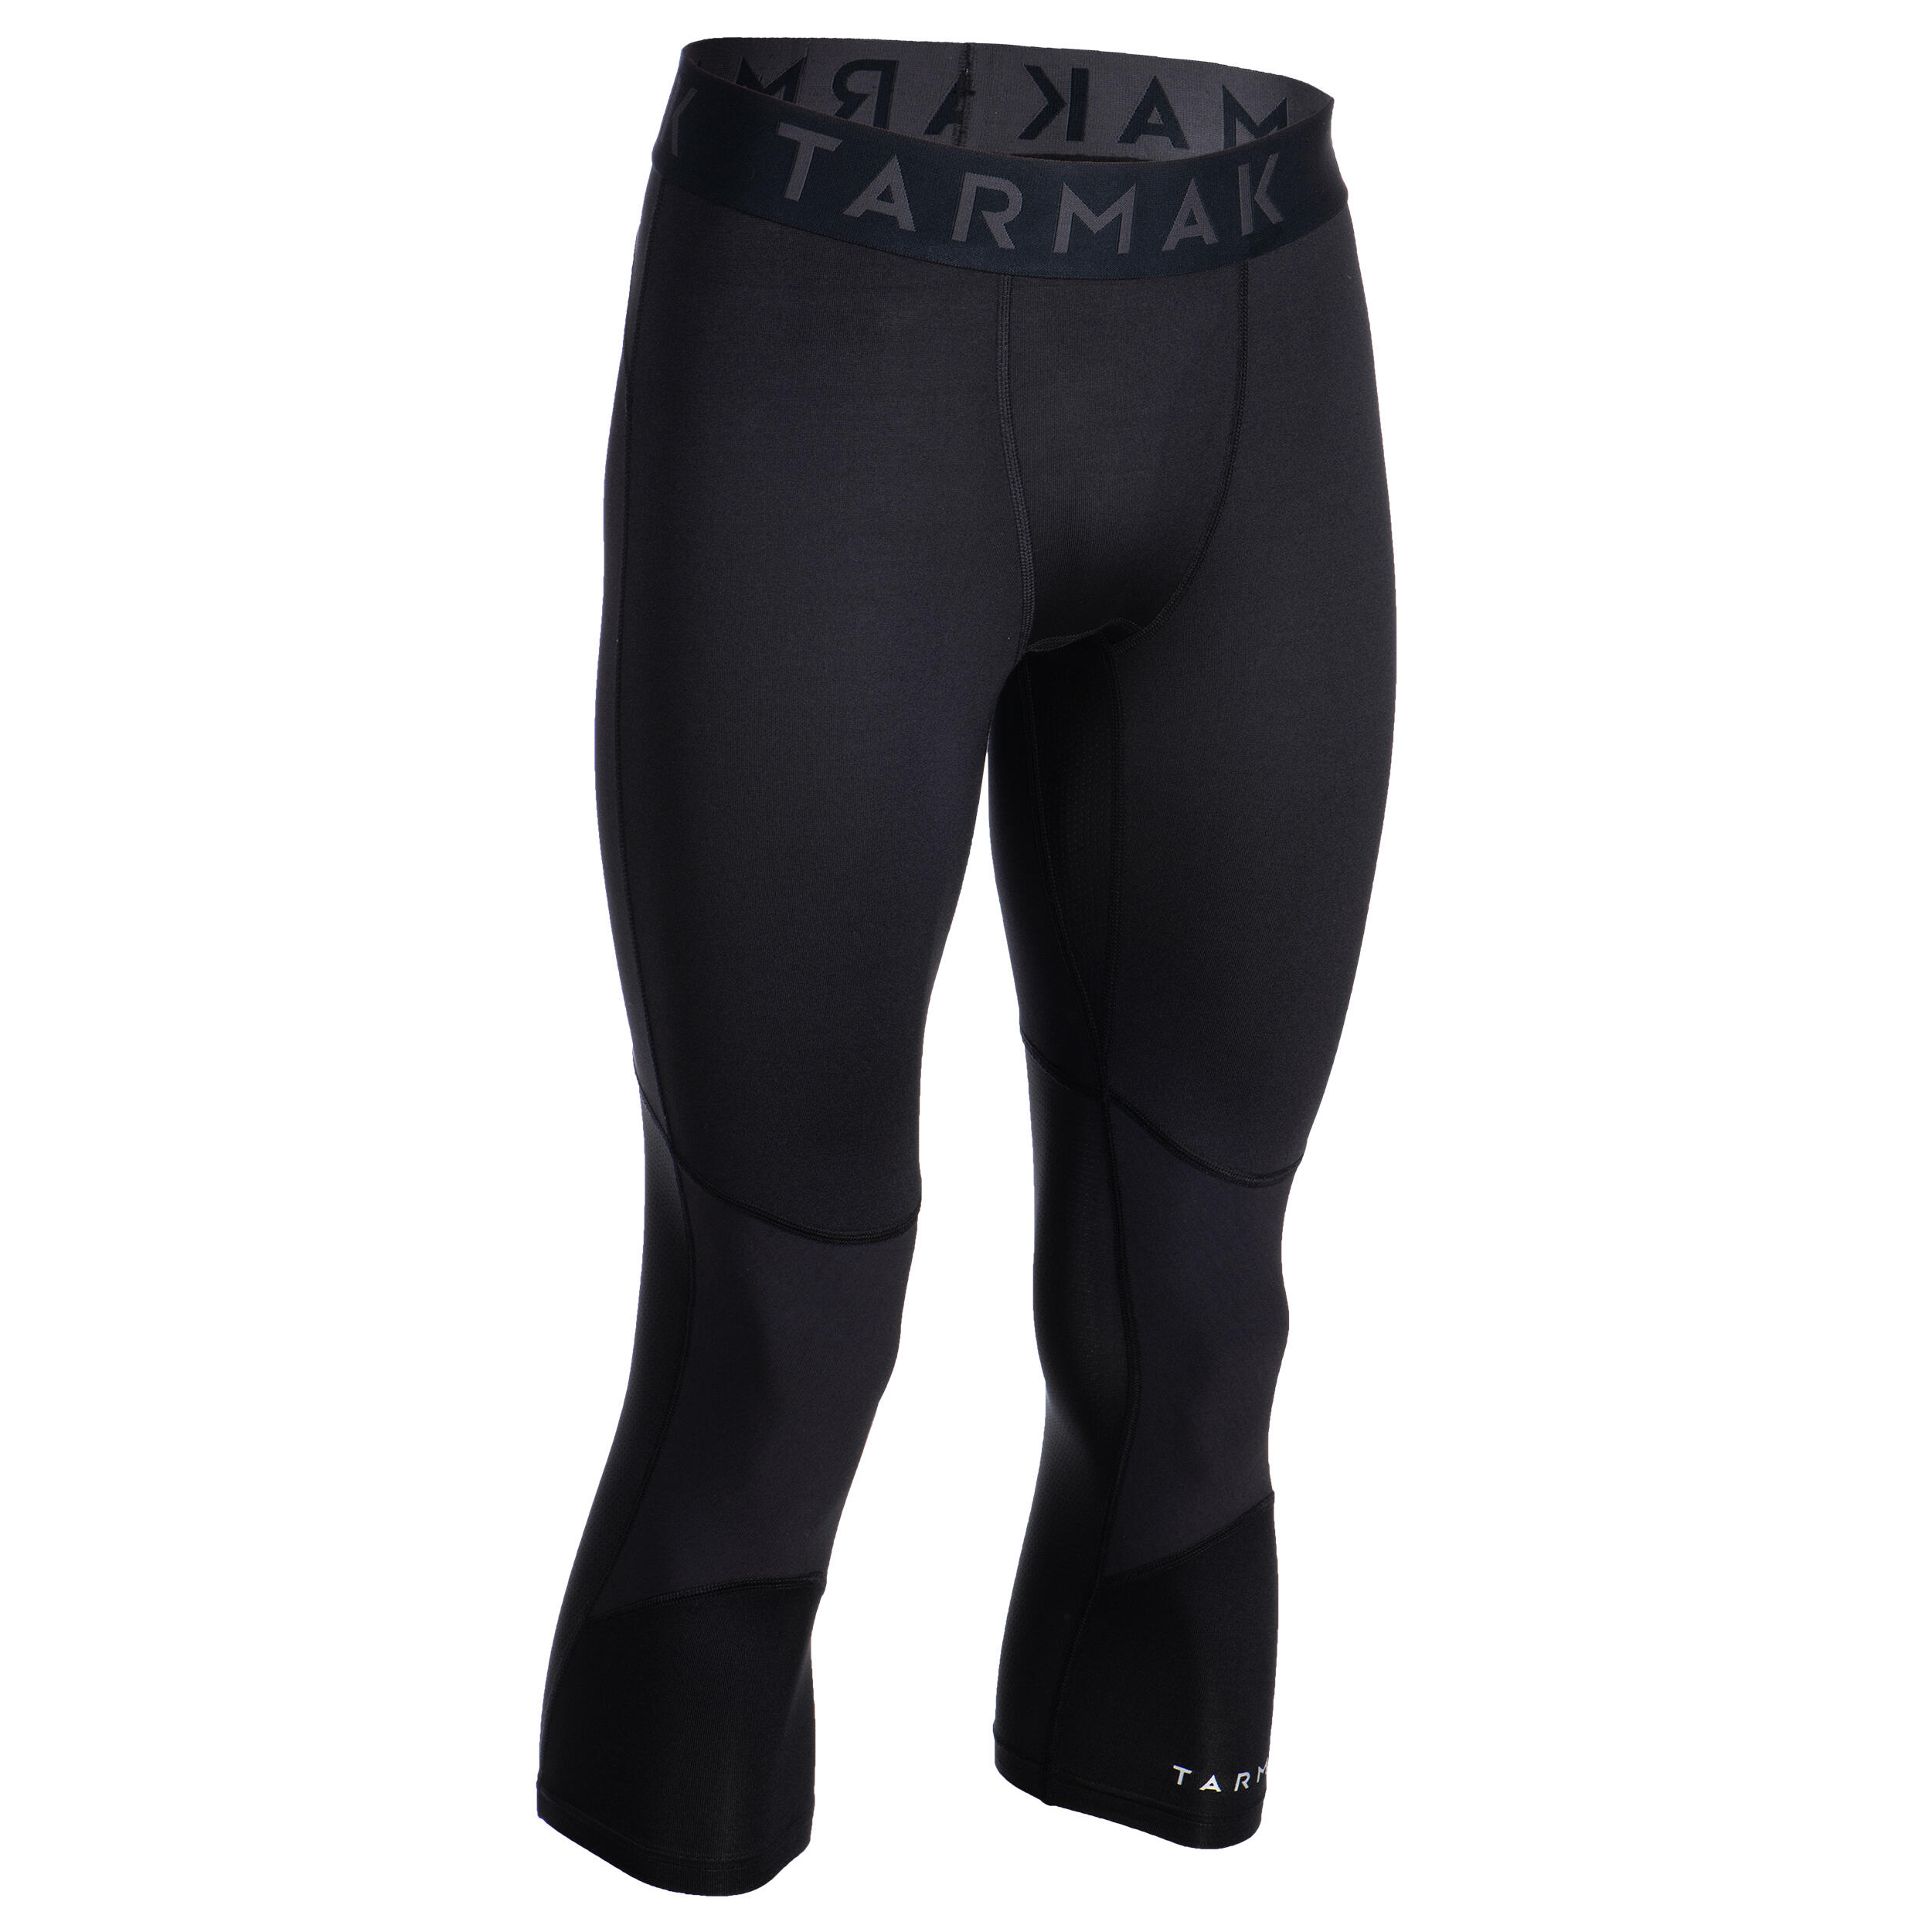 Basketball Trousers Tights Bottoms Decathlon